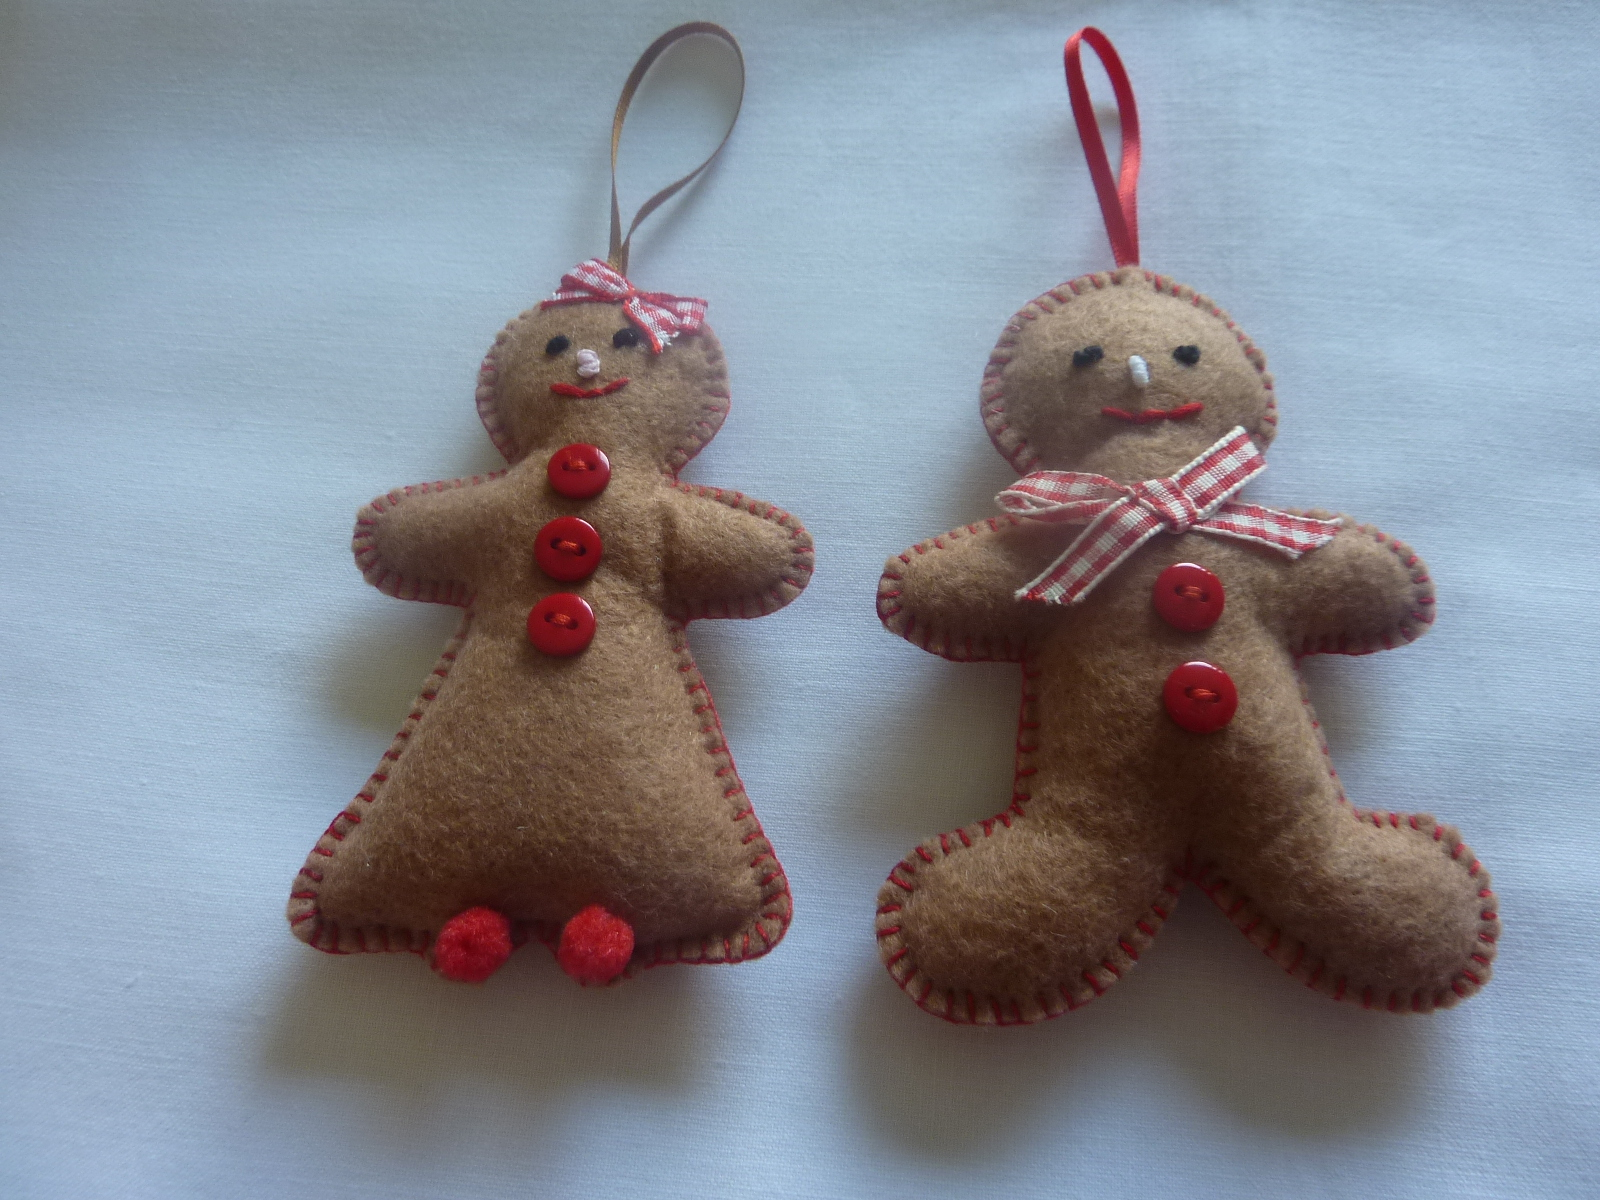 HAND-MADE FELT CHRISTMAS DECORATIONS Made to order - £2.50 each